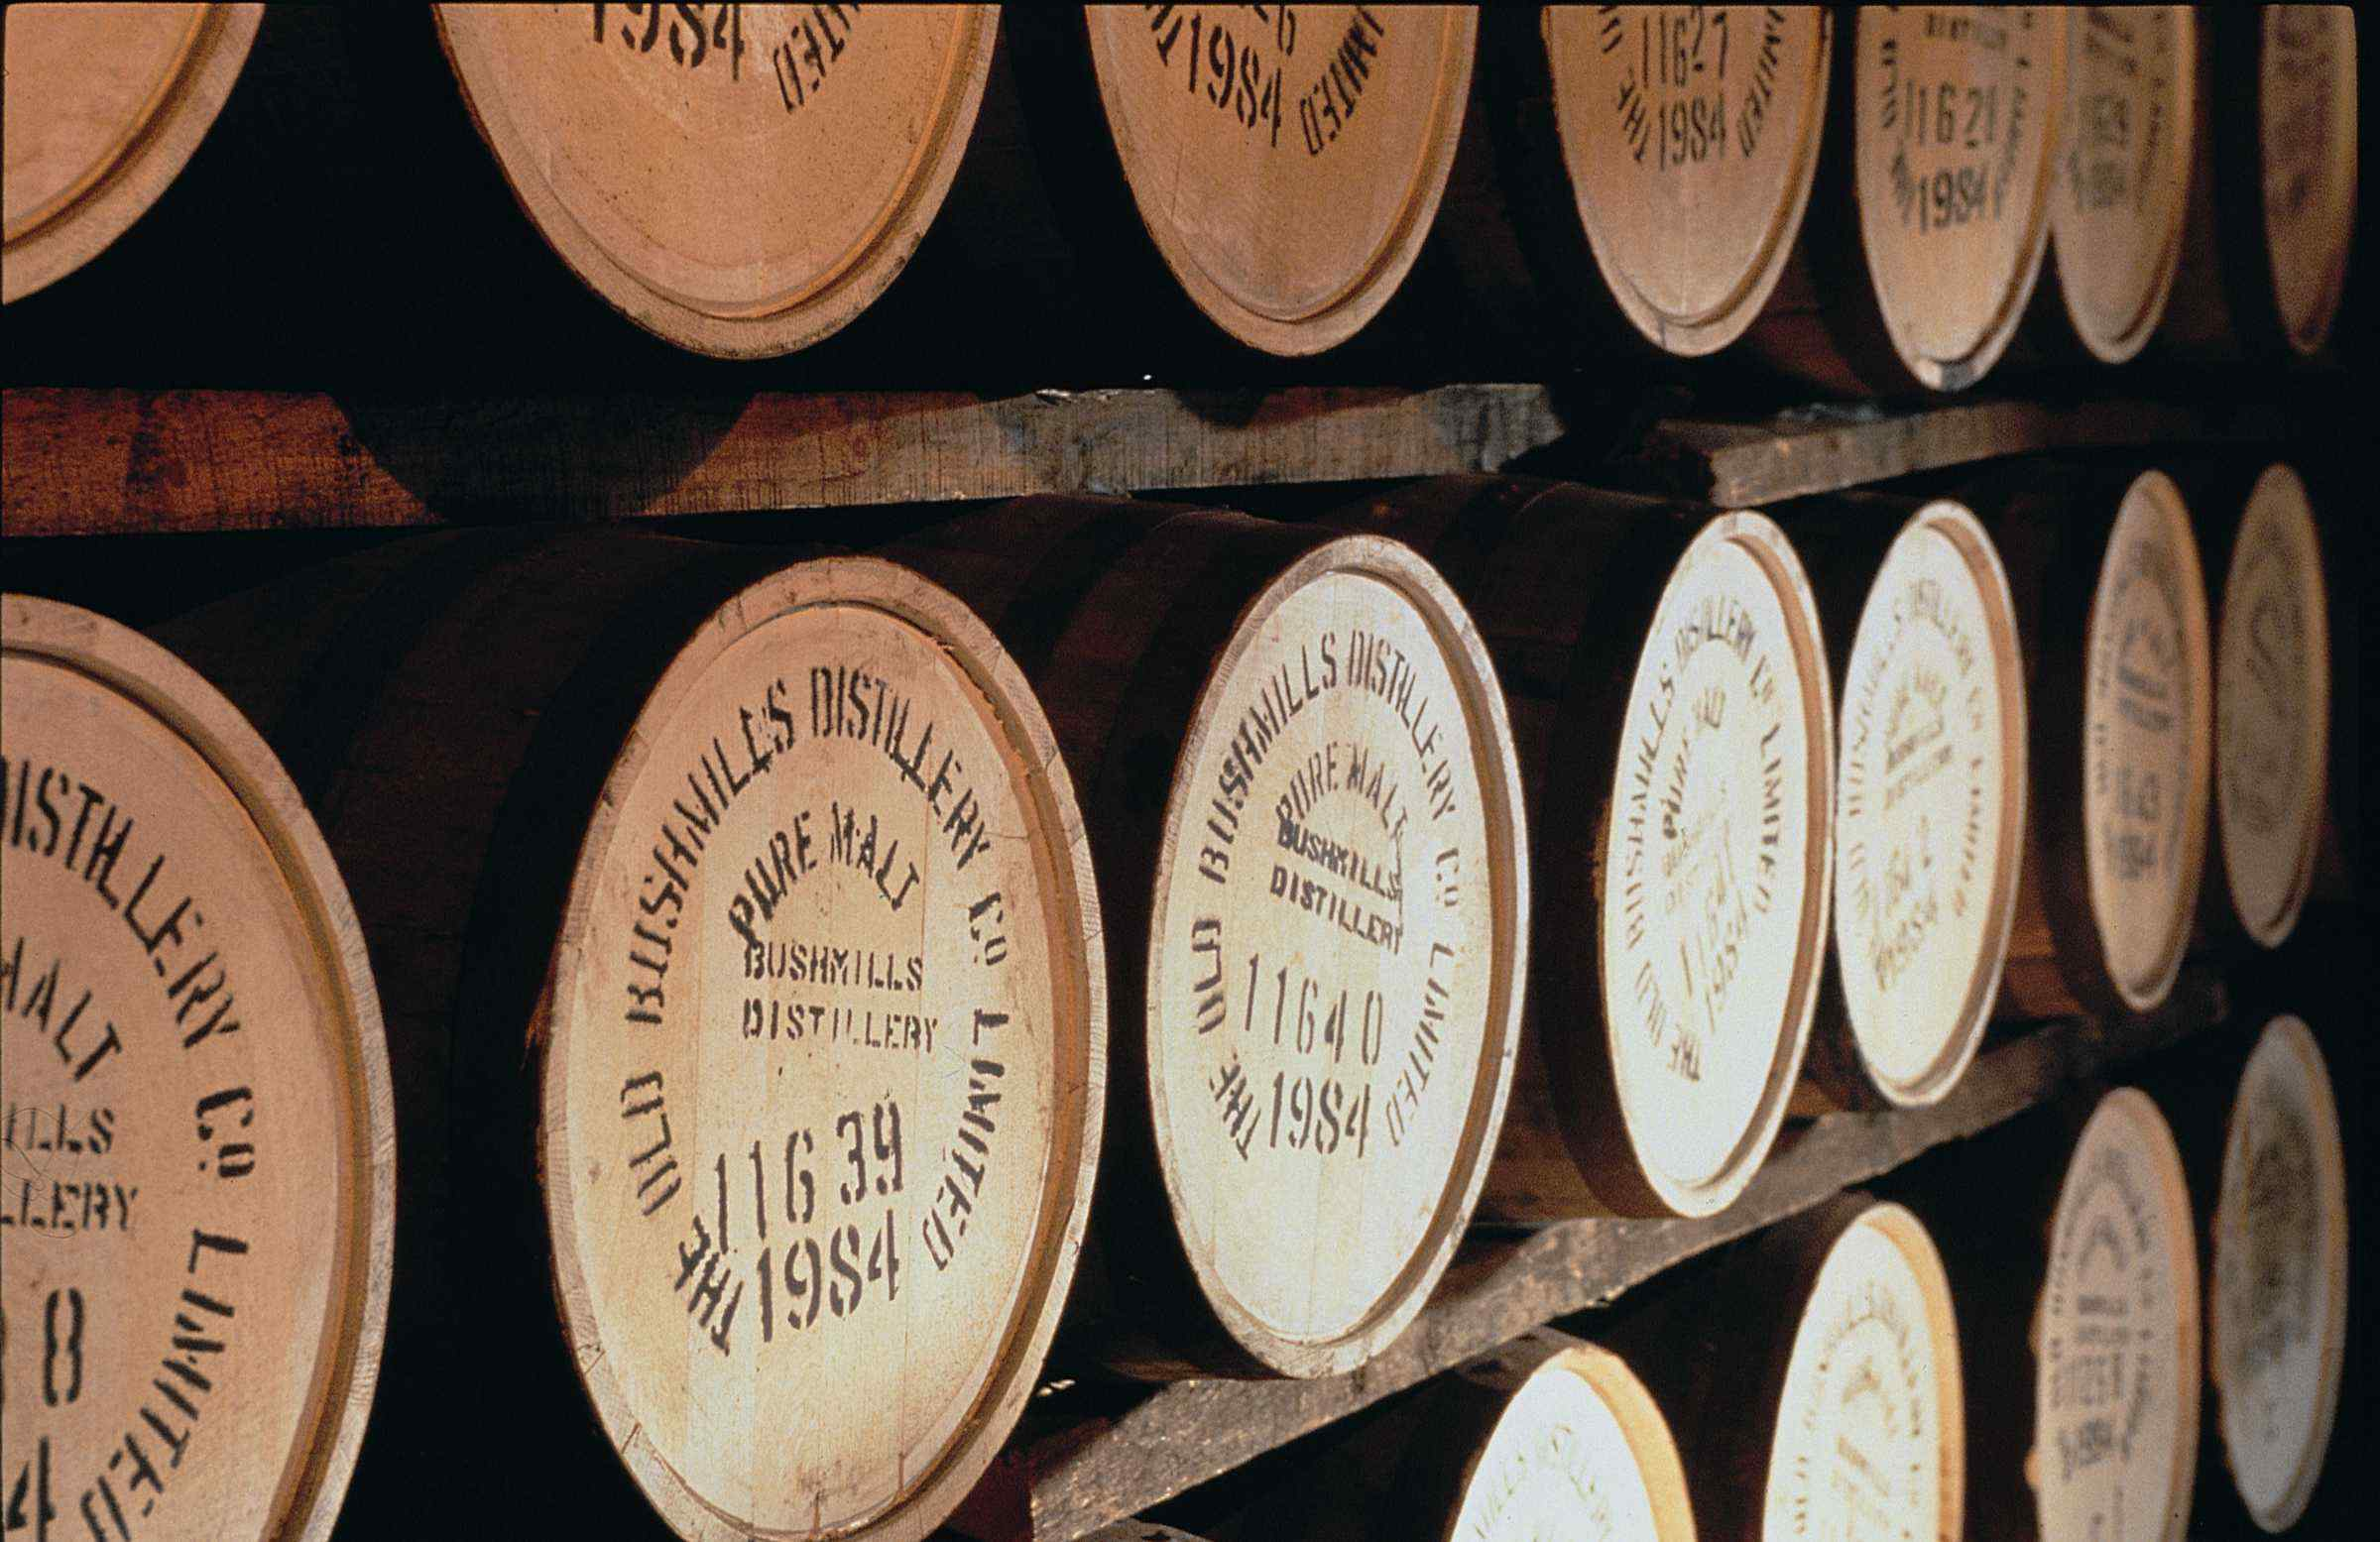 whisky 1080p wallpapers hd - photo #34